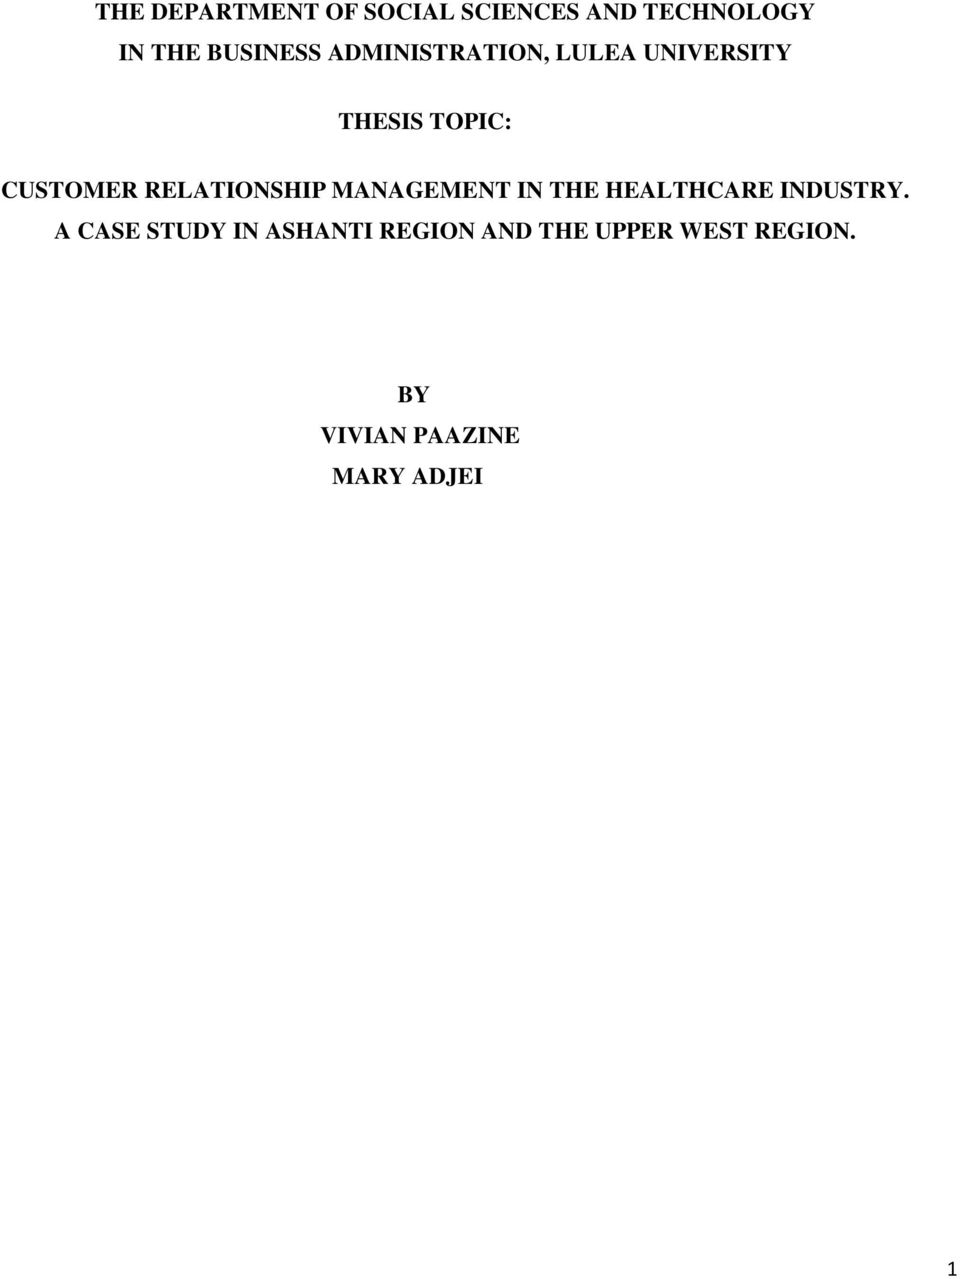 Thesis related to customer relationship management